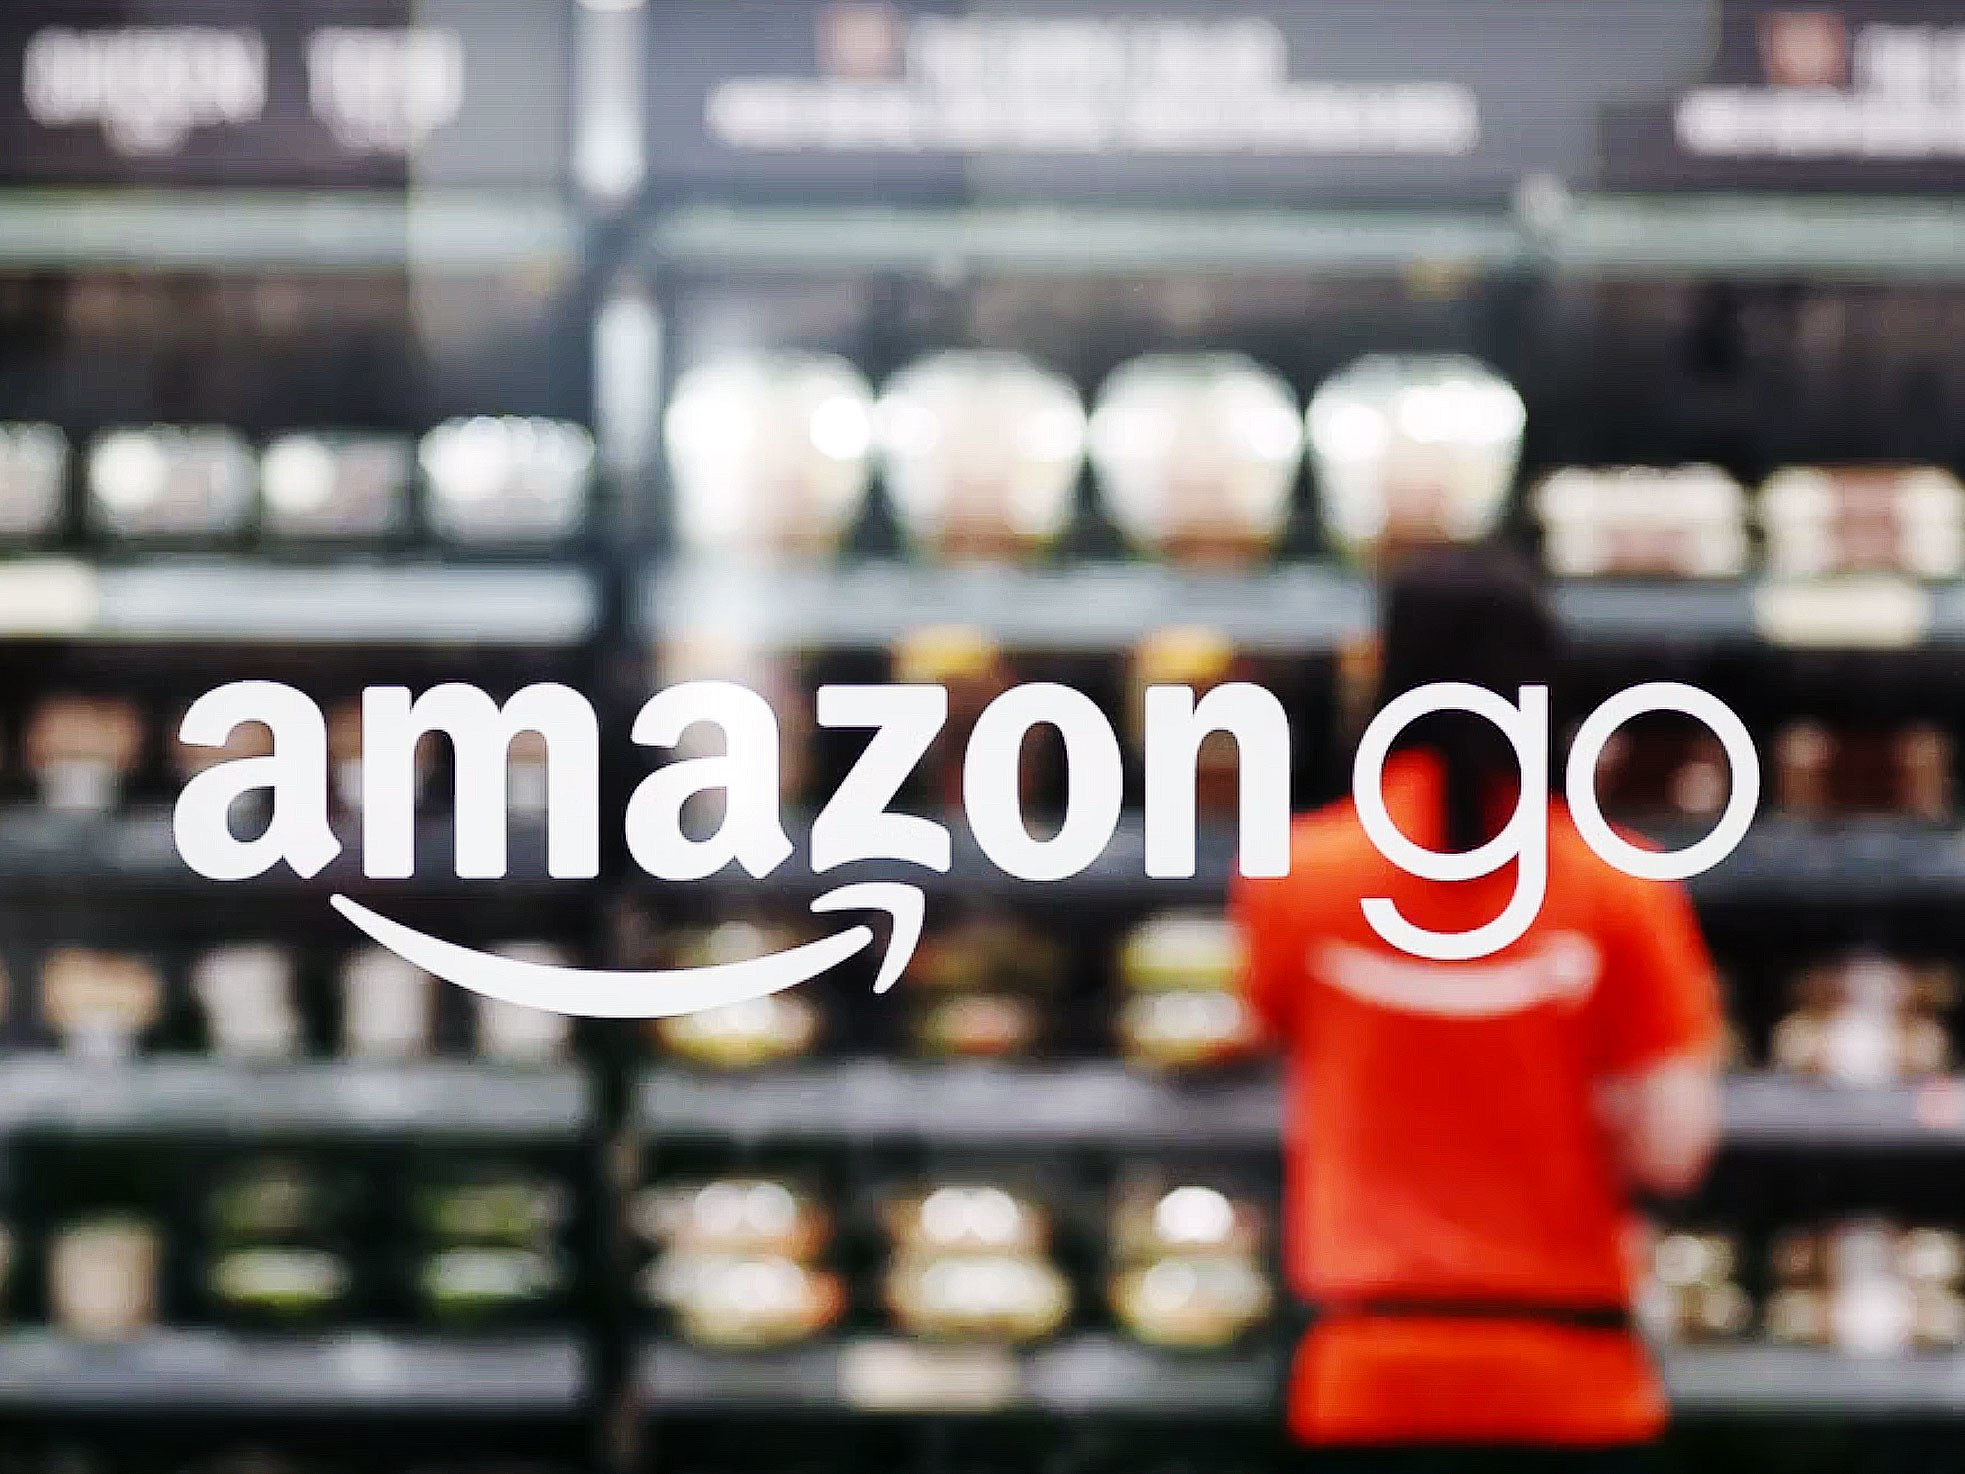 Fully Understanding Potential Amazon Effects on the Convenience Channel and Planning Three Strategic Responses